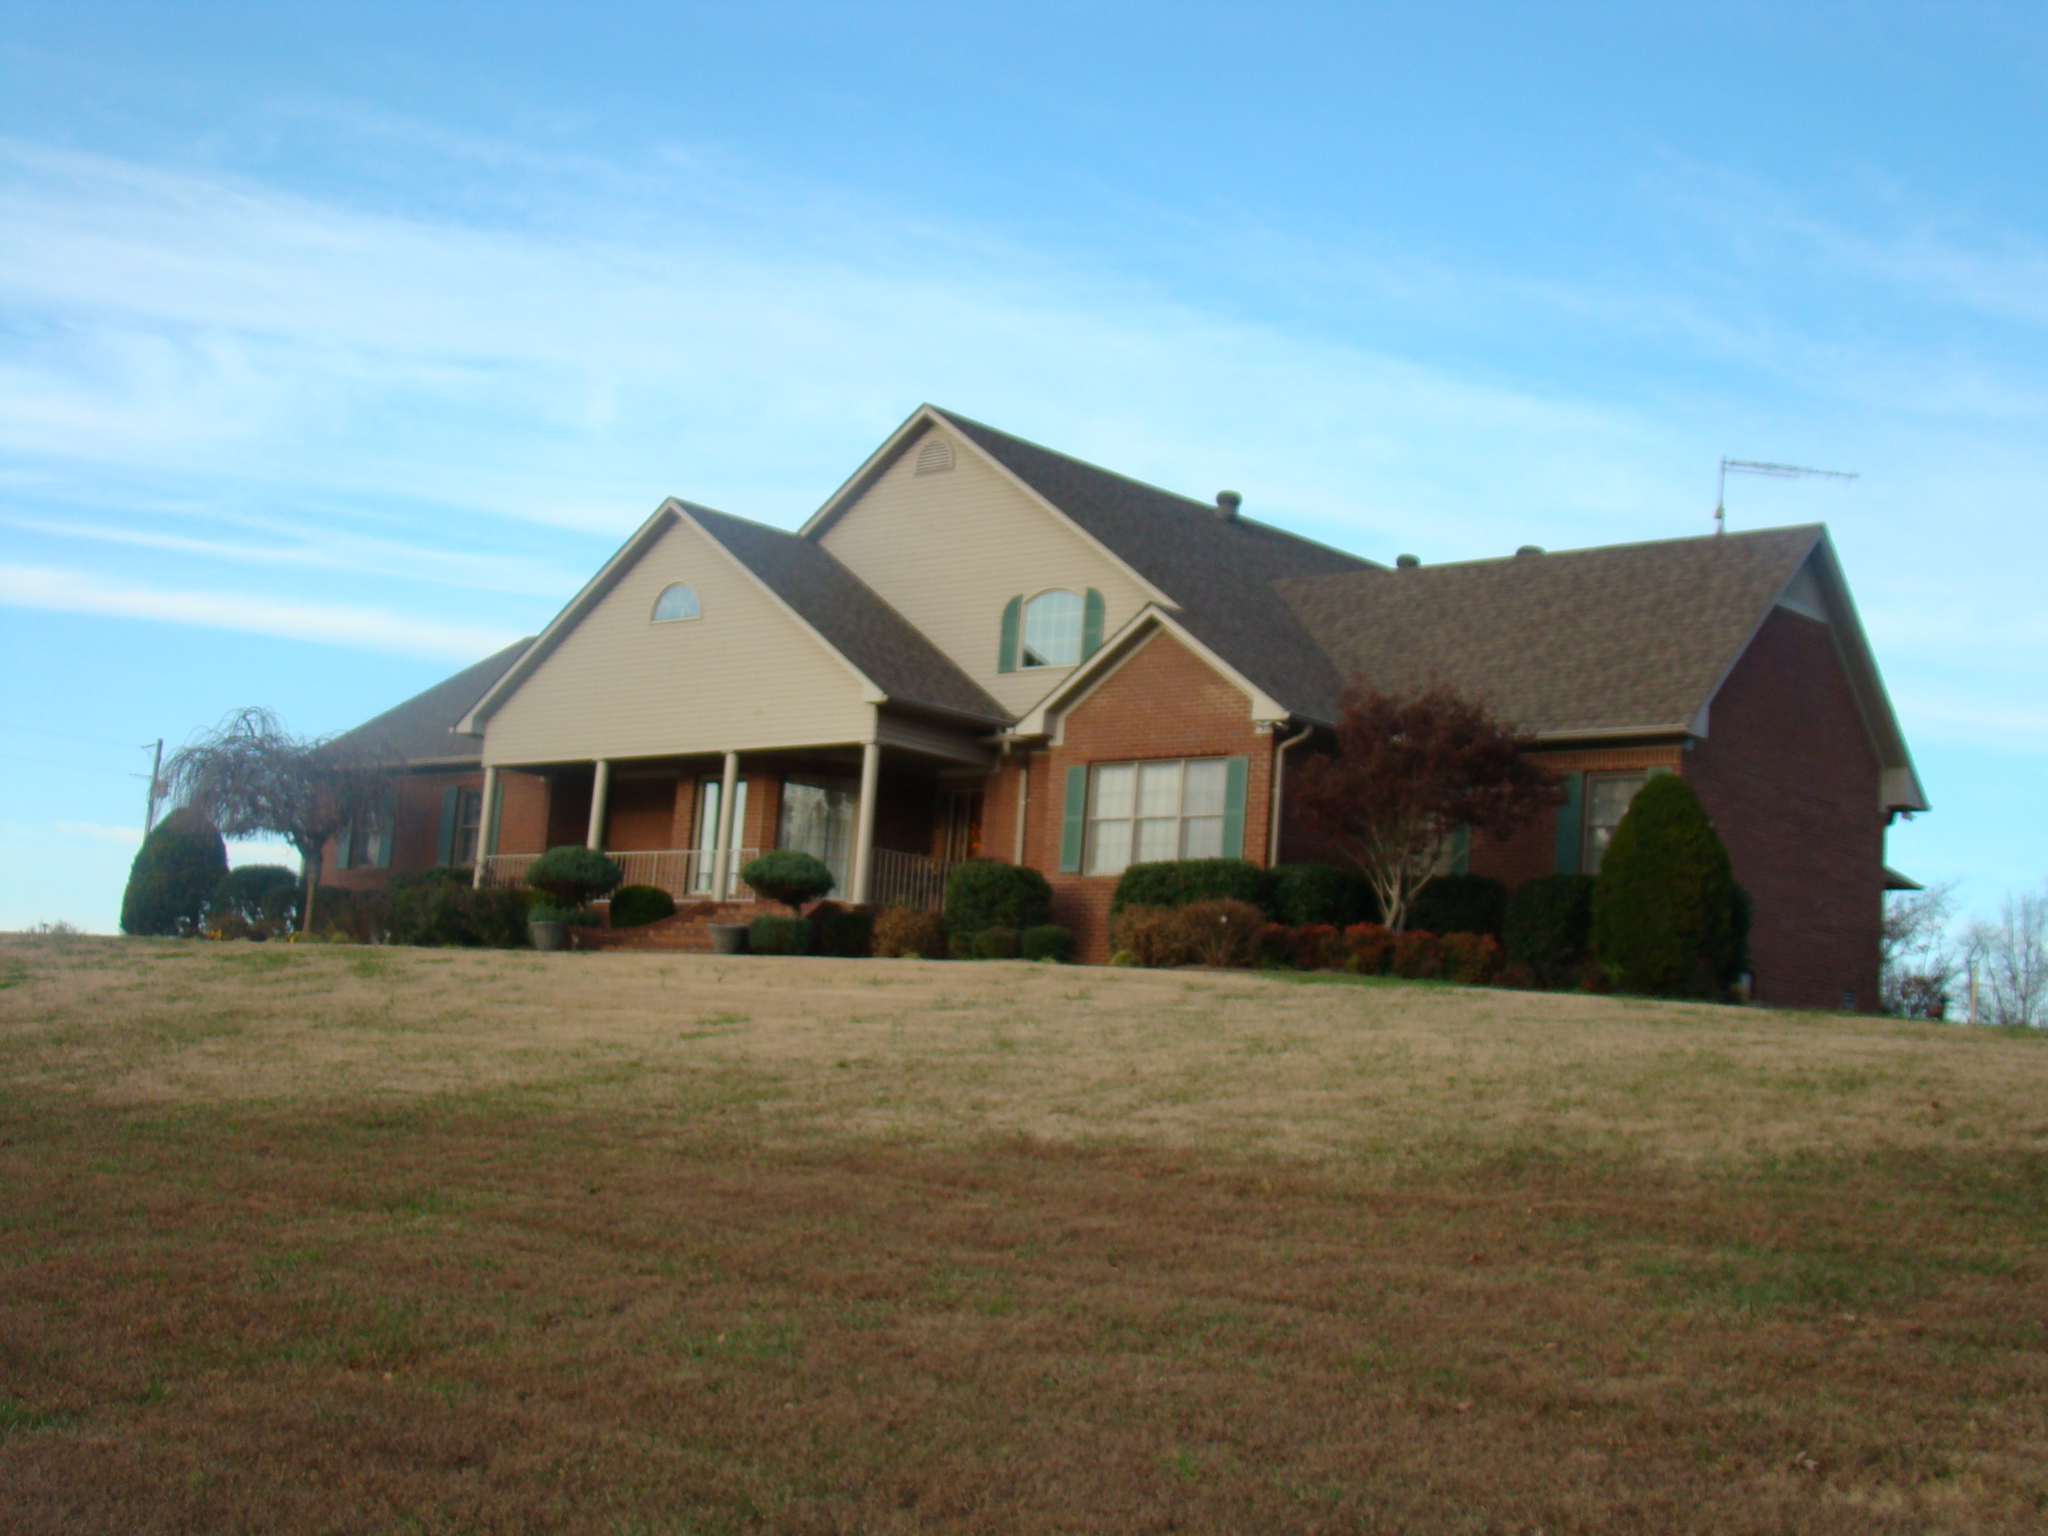 3100 Rock Springs Dr, Union City, Tennessee 38261